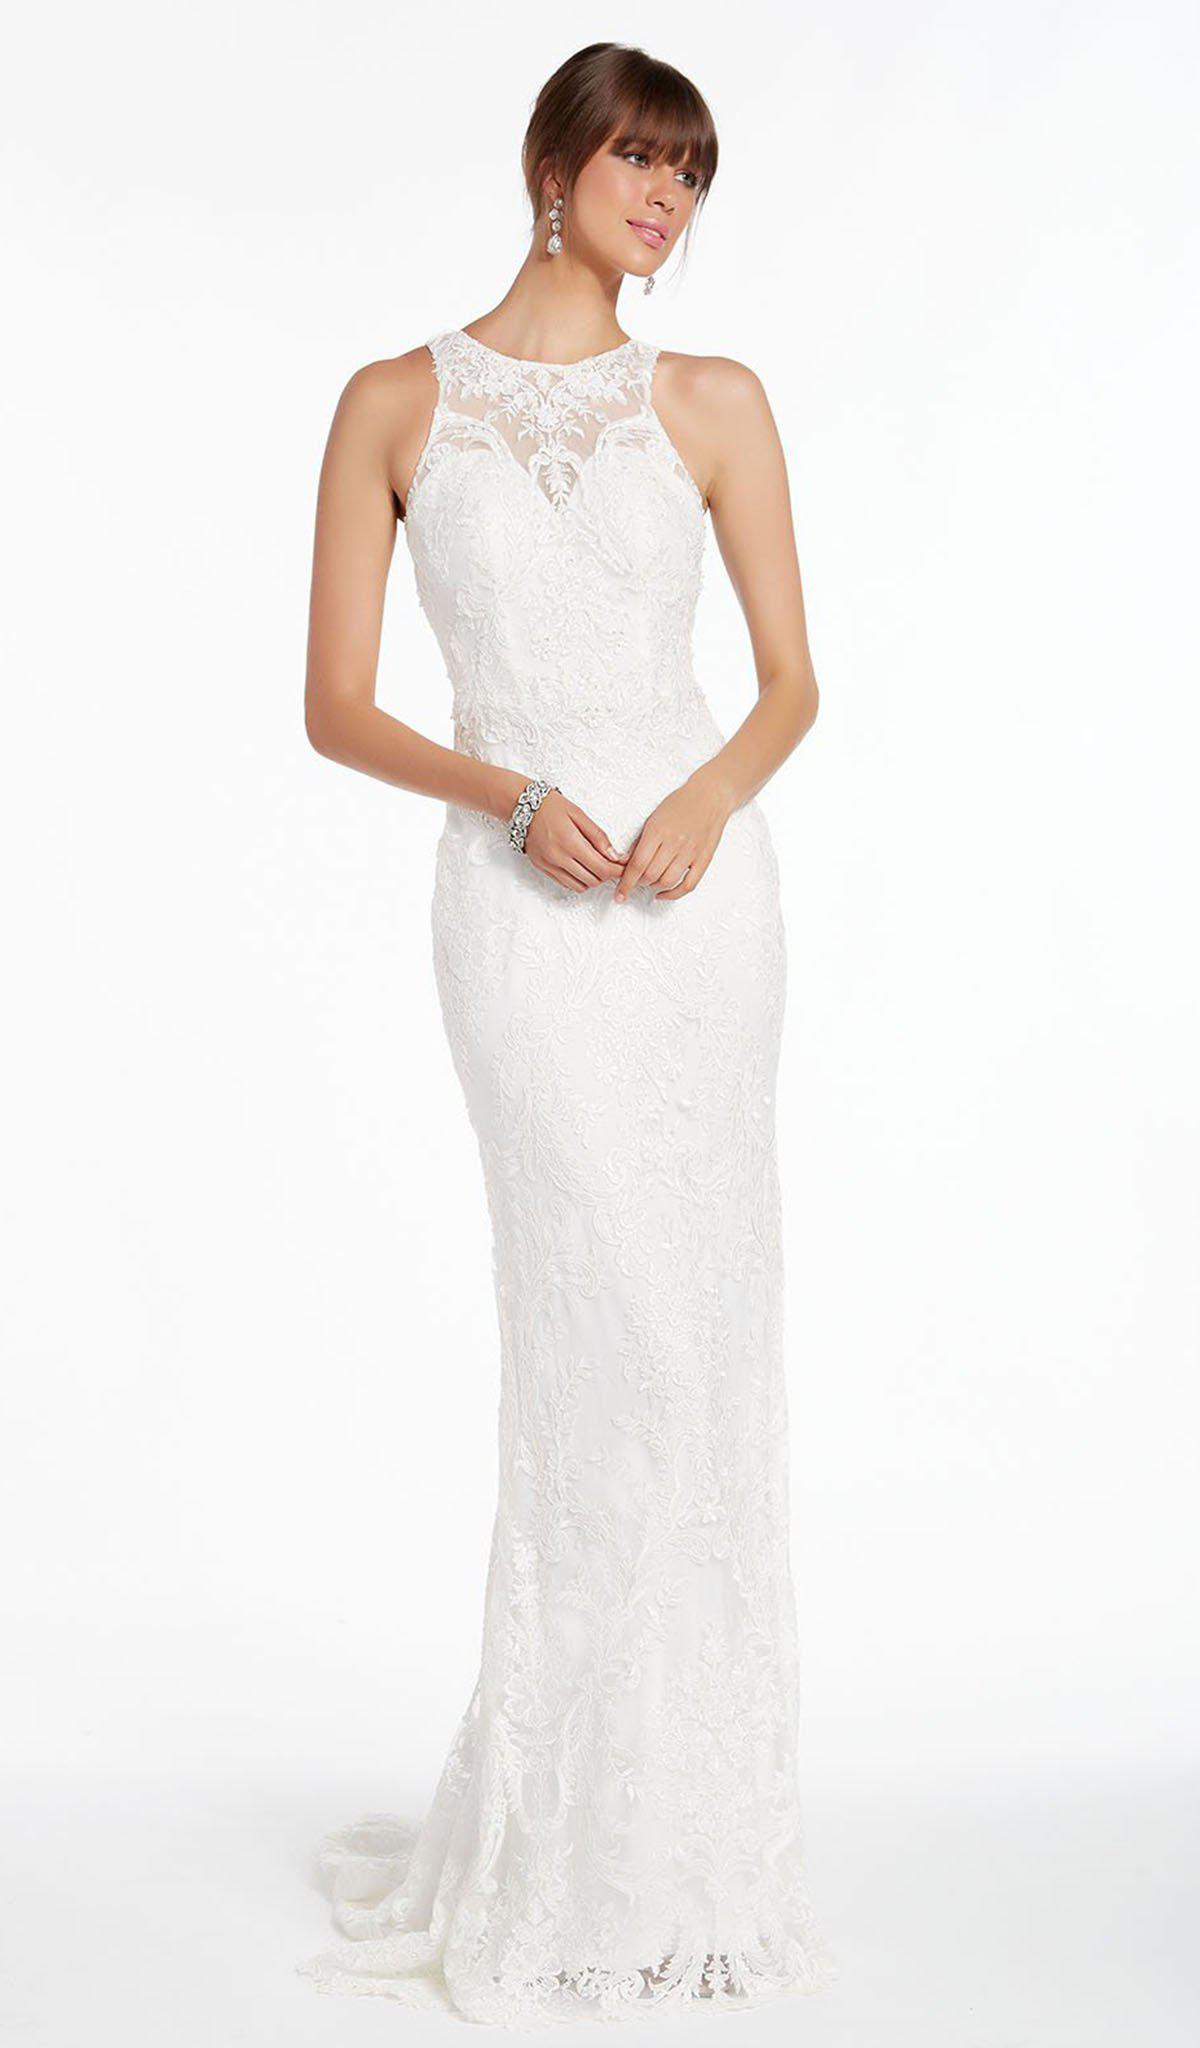 4ad1947321 Lyst - Alyce Paris 7008 Sheer Jewel Neck Embroidered Lace Gown in White